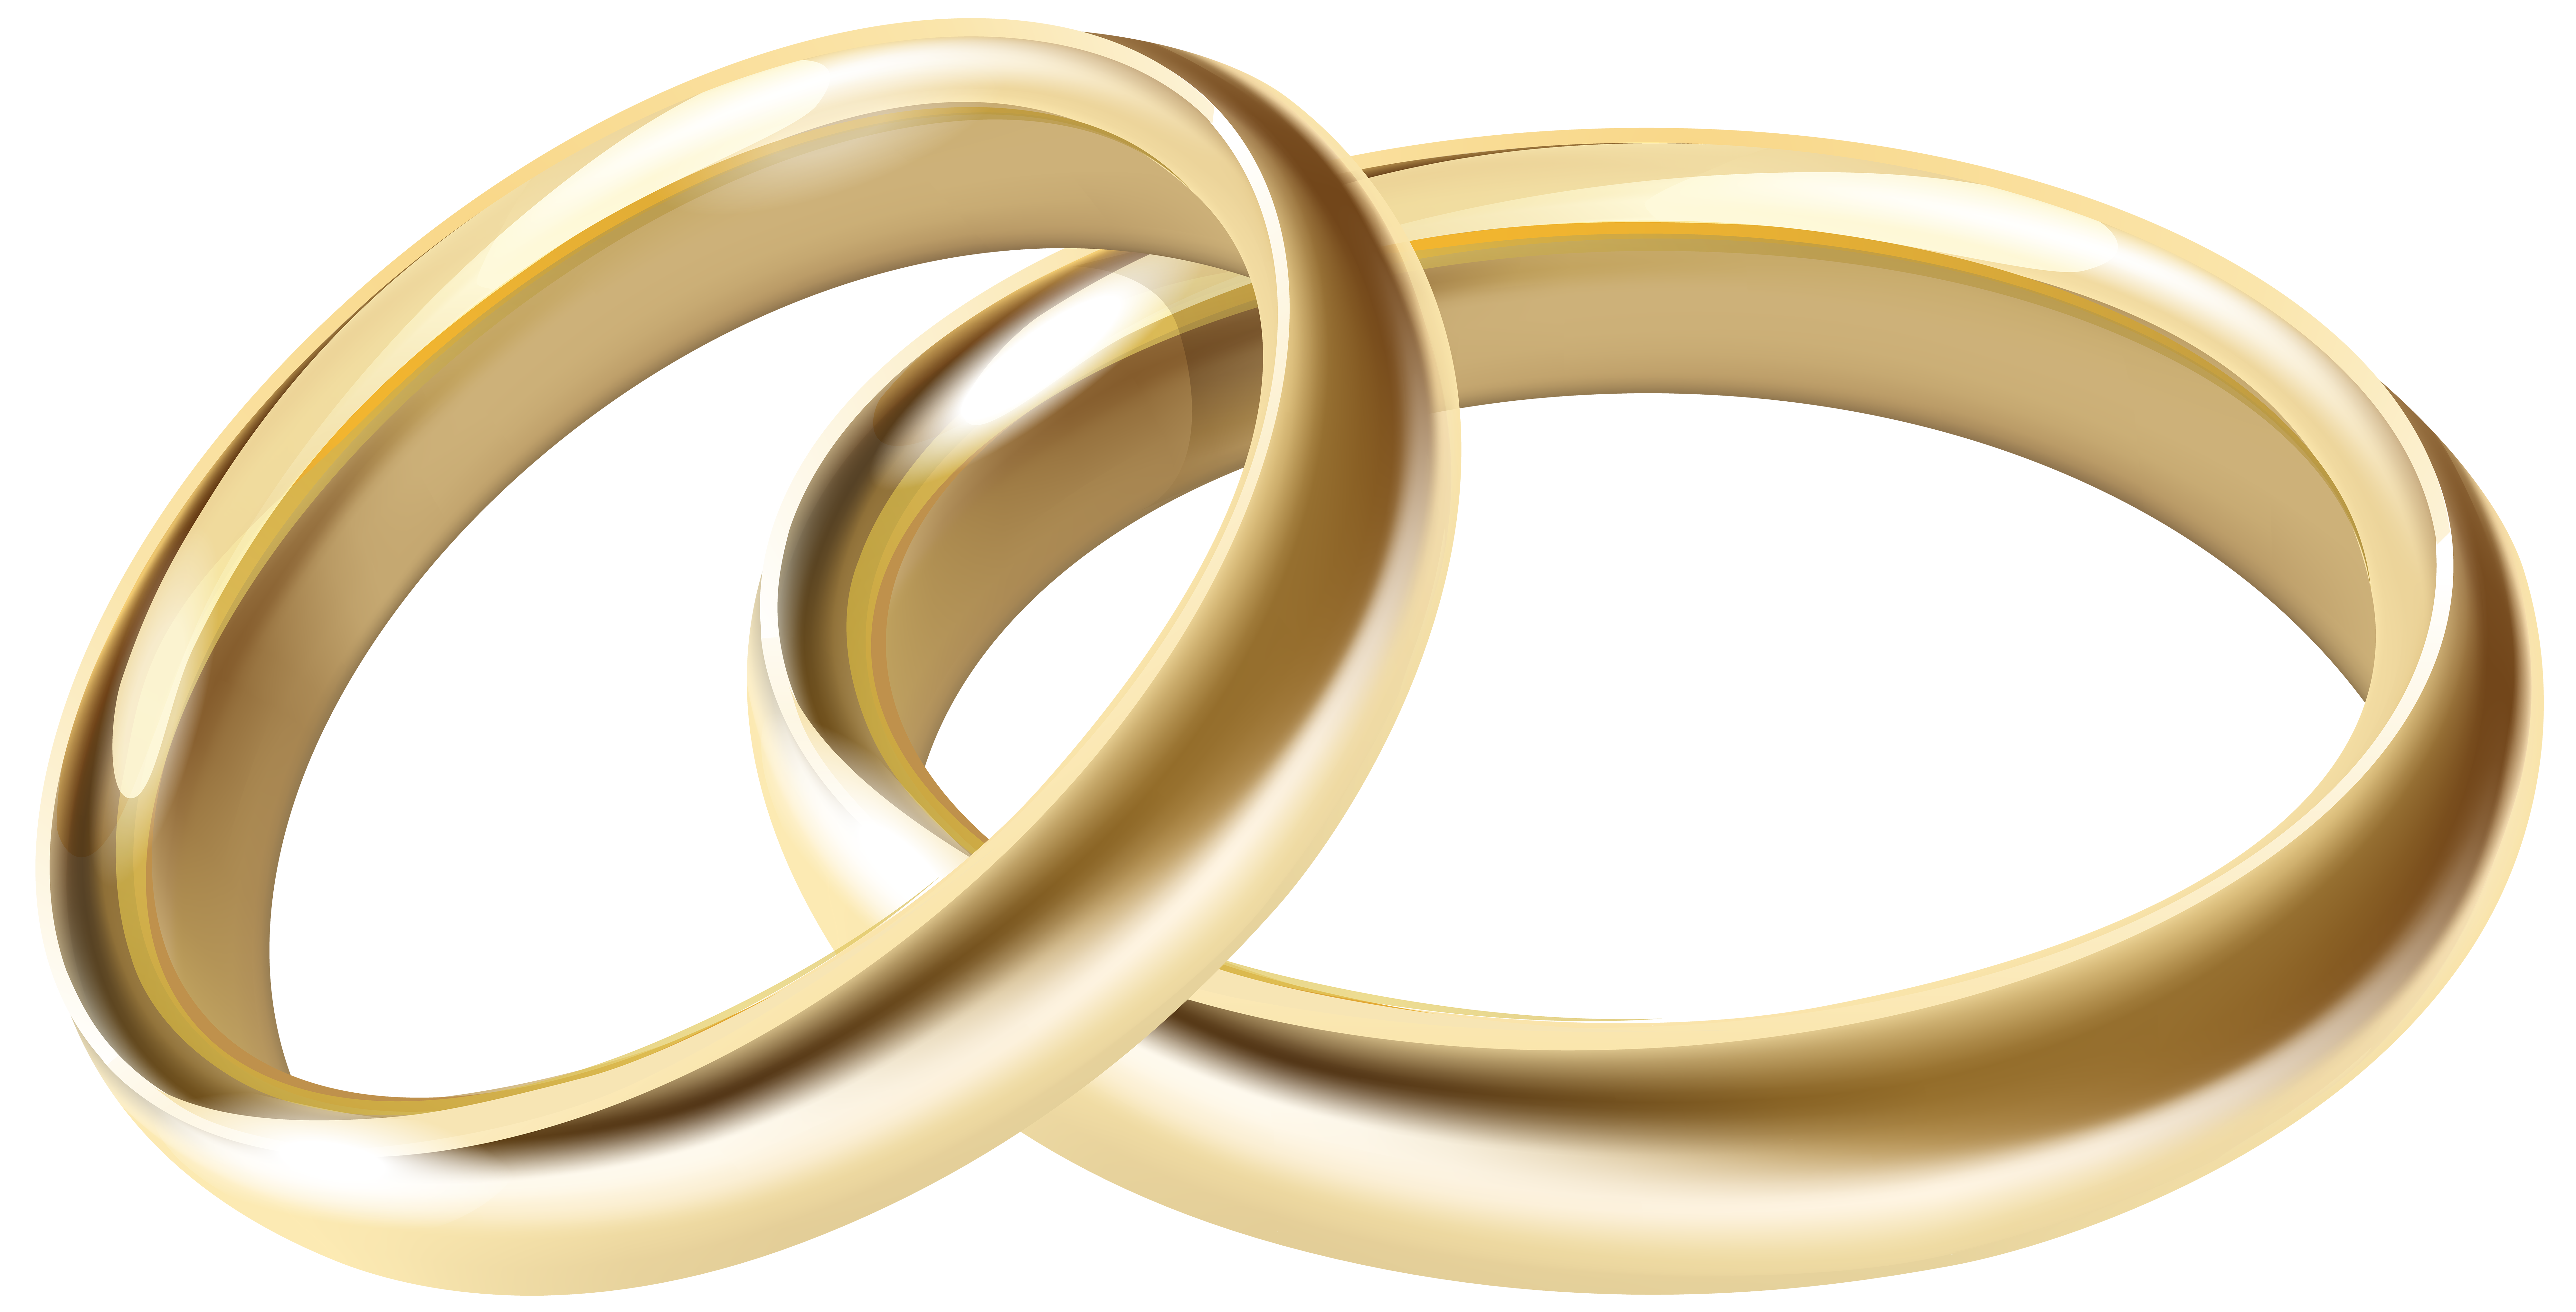 Wedding Rings Transparent Png Clip Art Image Gallery Yopriceville High Quality Images Tattoo Wedding Rings Black Wedding Rings Black Diamond Wedding Rings